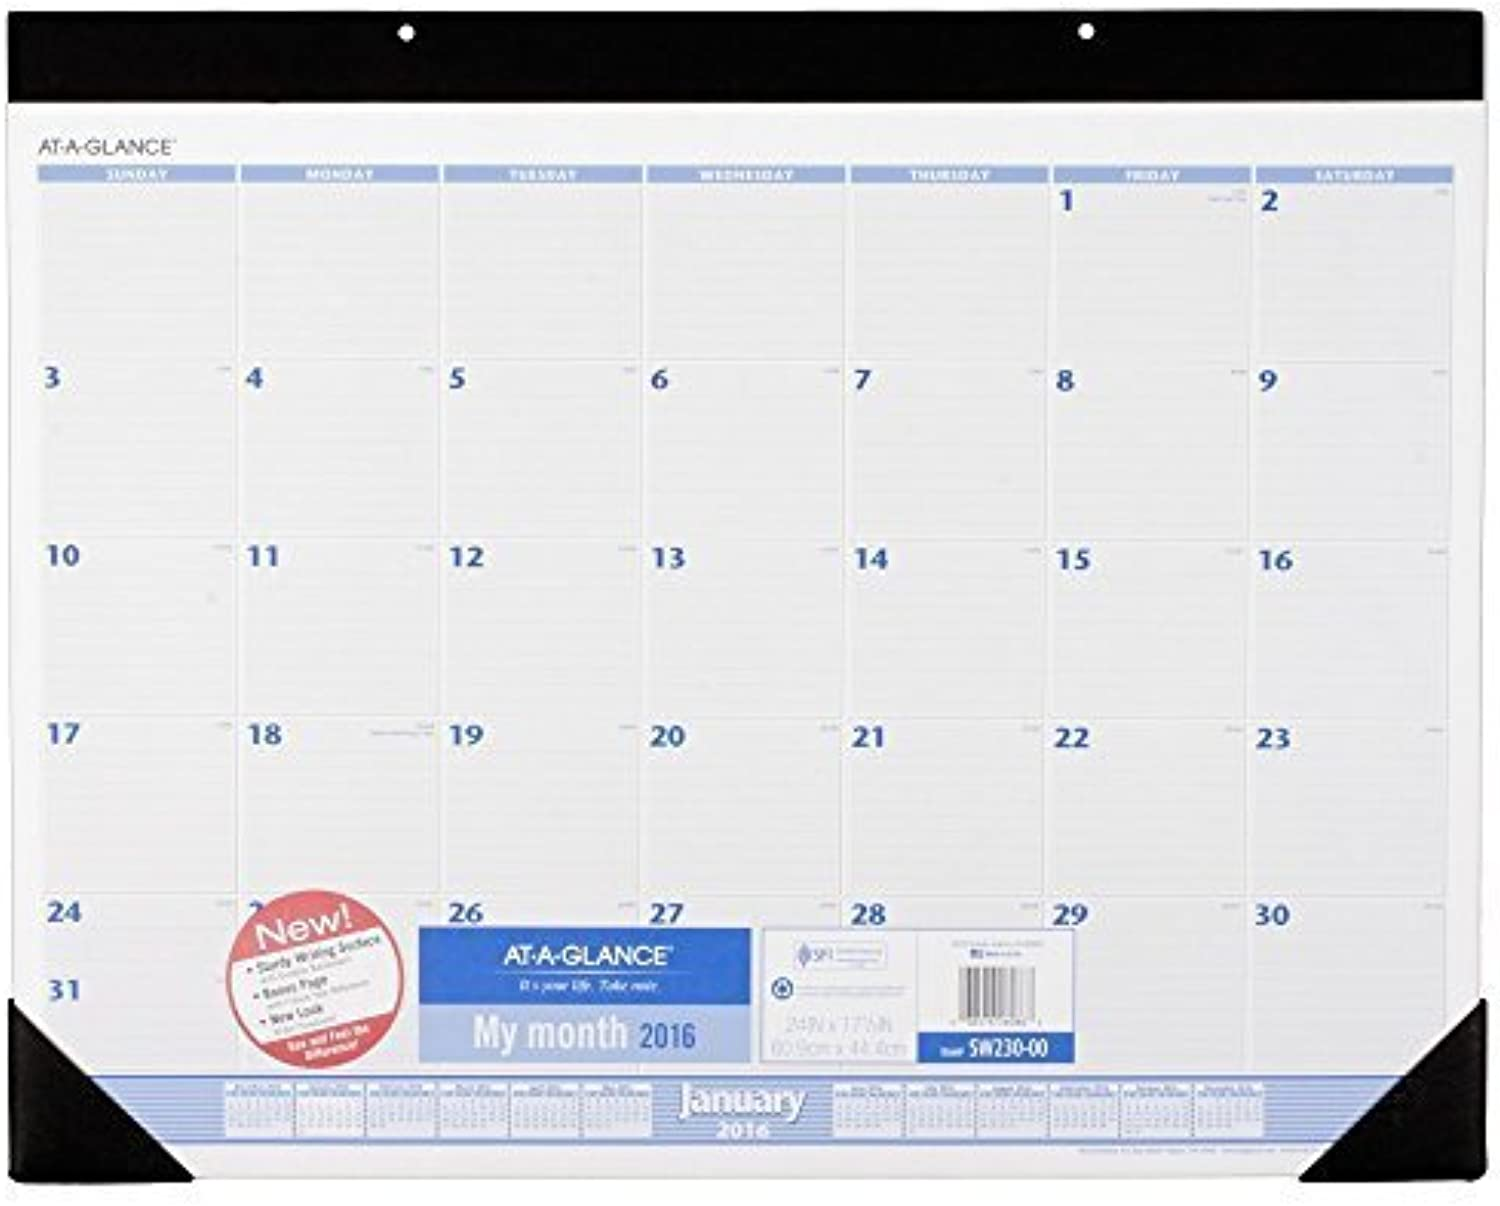 AT-A-GLANCE Desk Pad Calendar 2016, 12 Months, 24 x x x 17-1 2 Inches (SW230-00) by ACCO Brands B018OQBMJE | Komfort  93bfe1